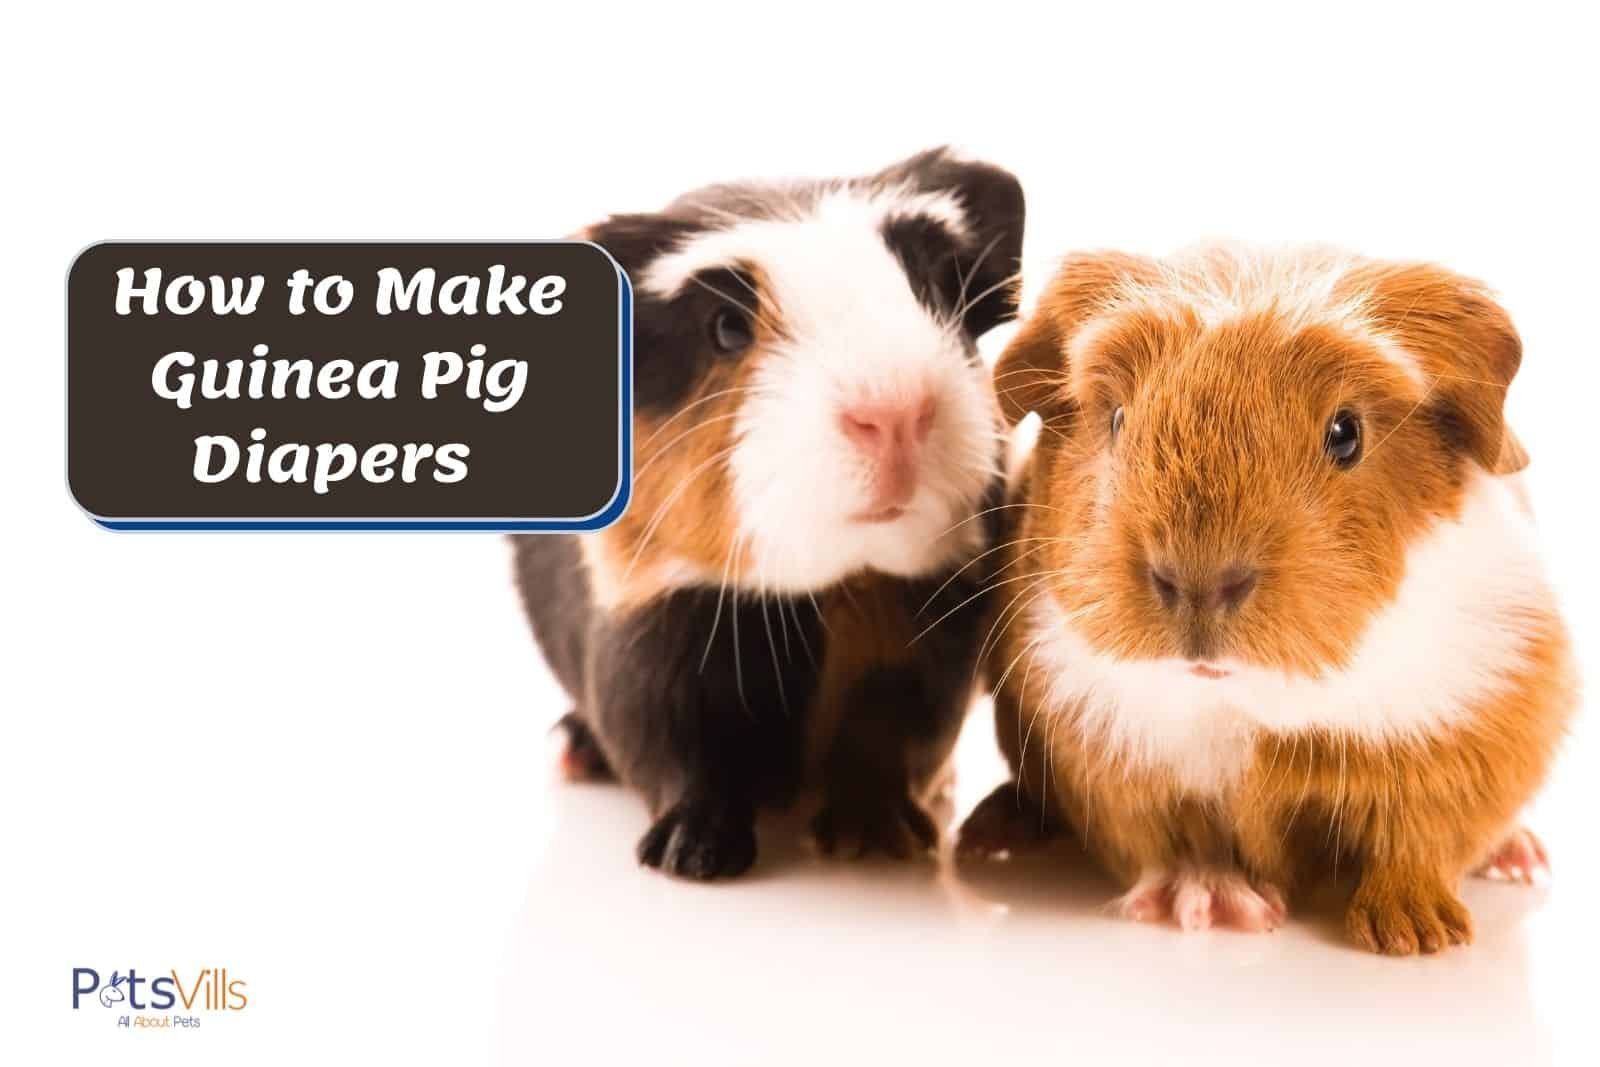 two adorable baby guinea pigs sitting beside each other: how to make guinea pig diapers for them?